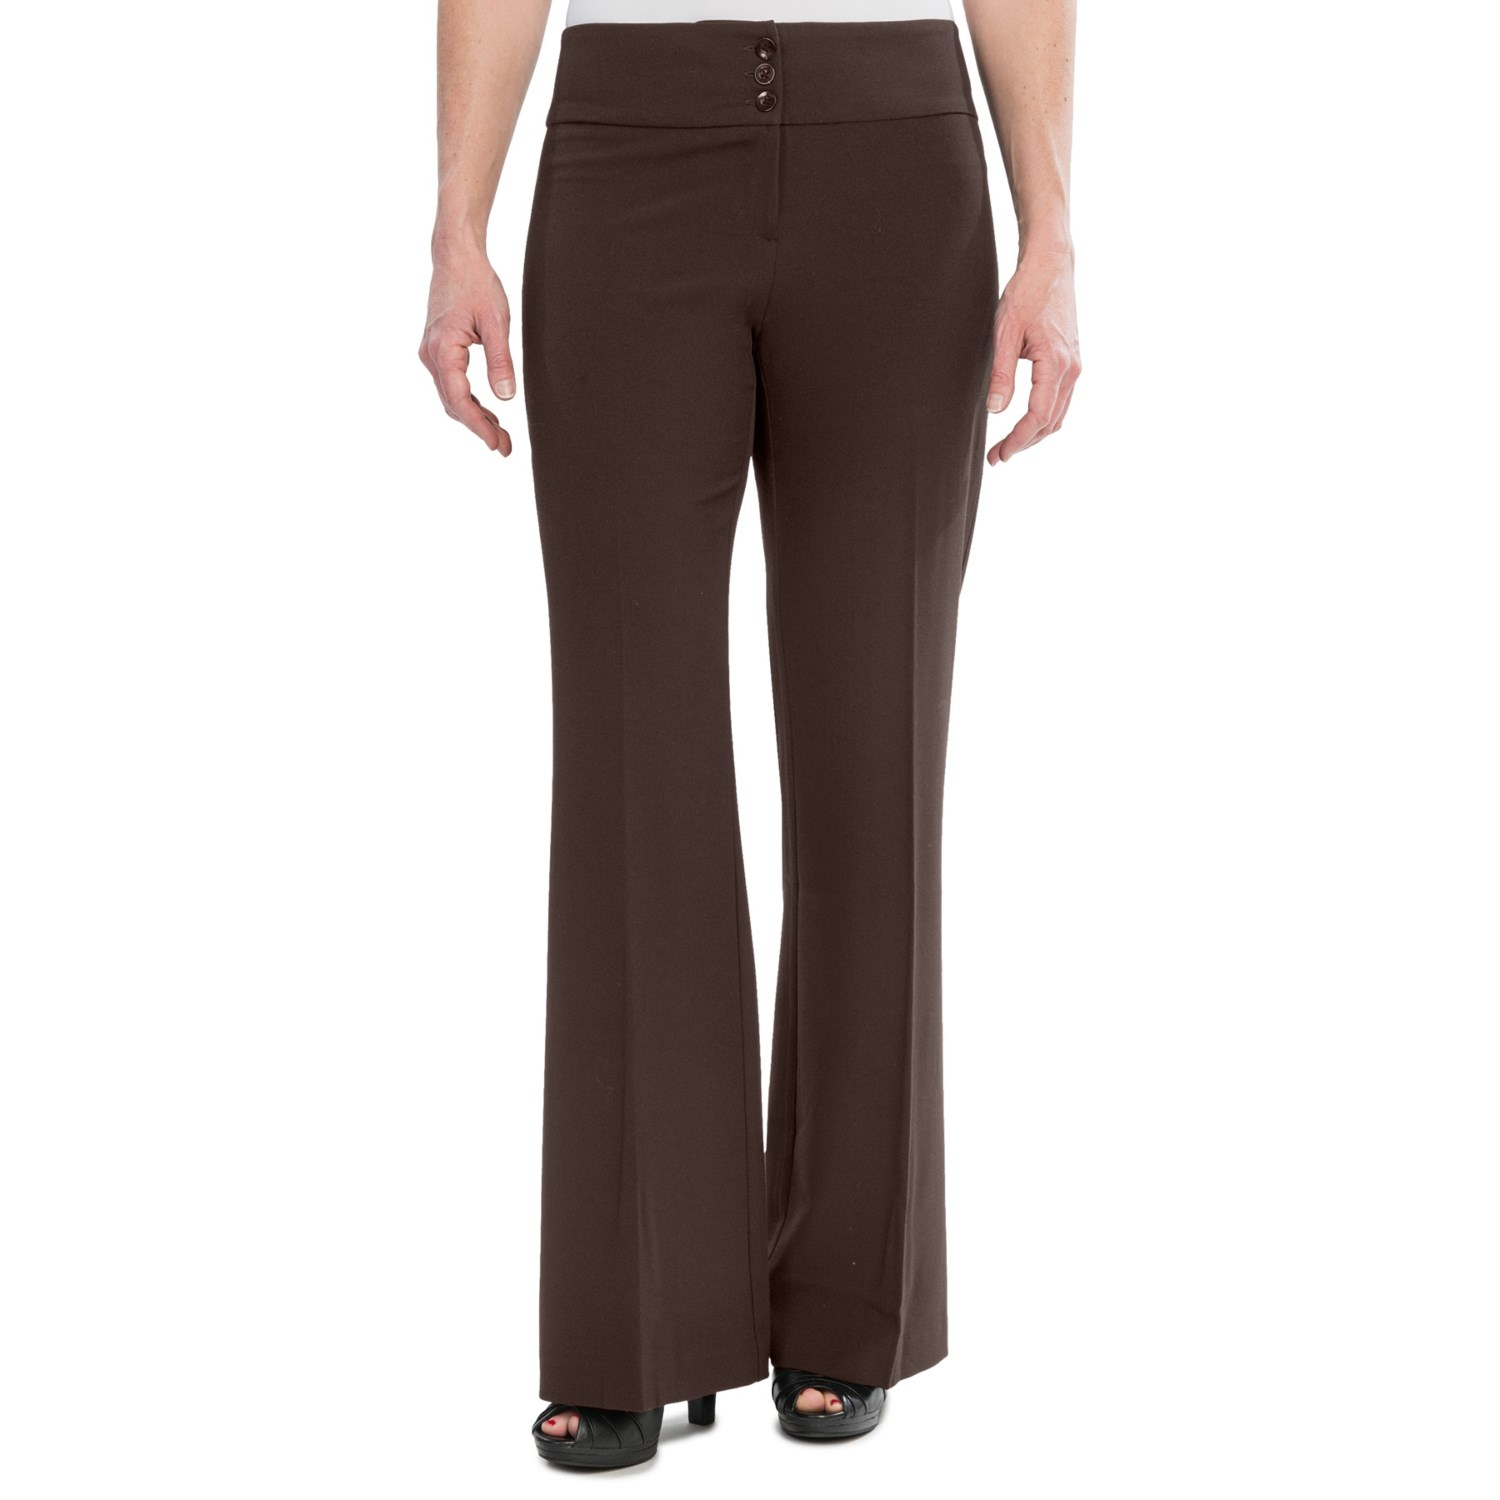 30 luxury Brown Dress Pants Women – playzoa.com